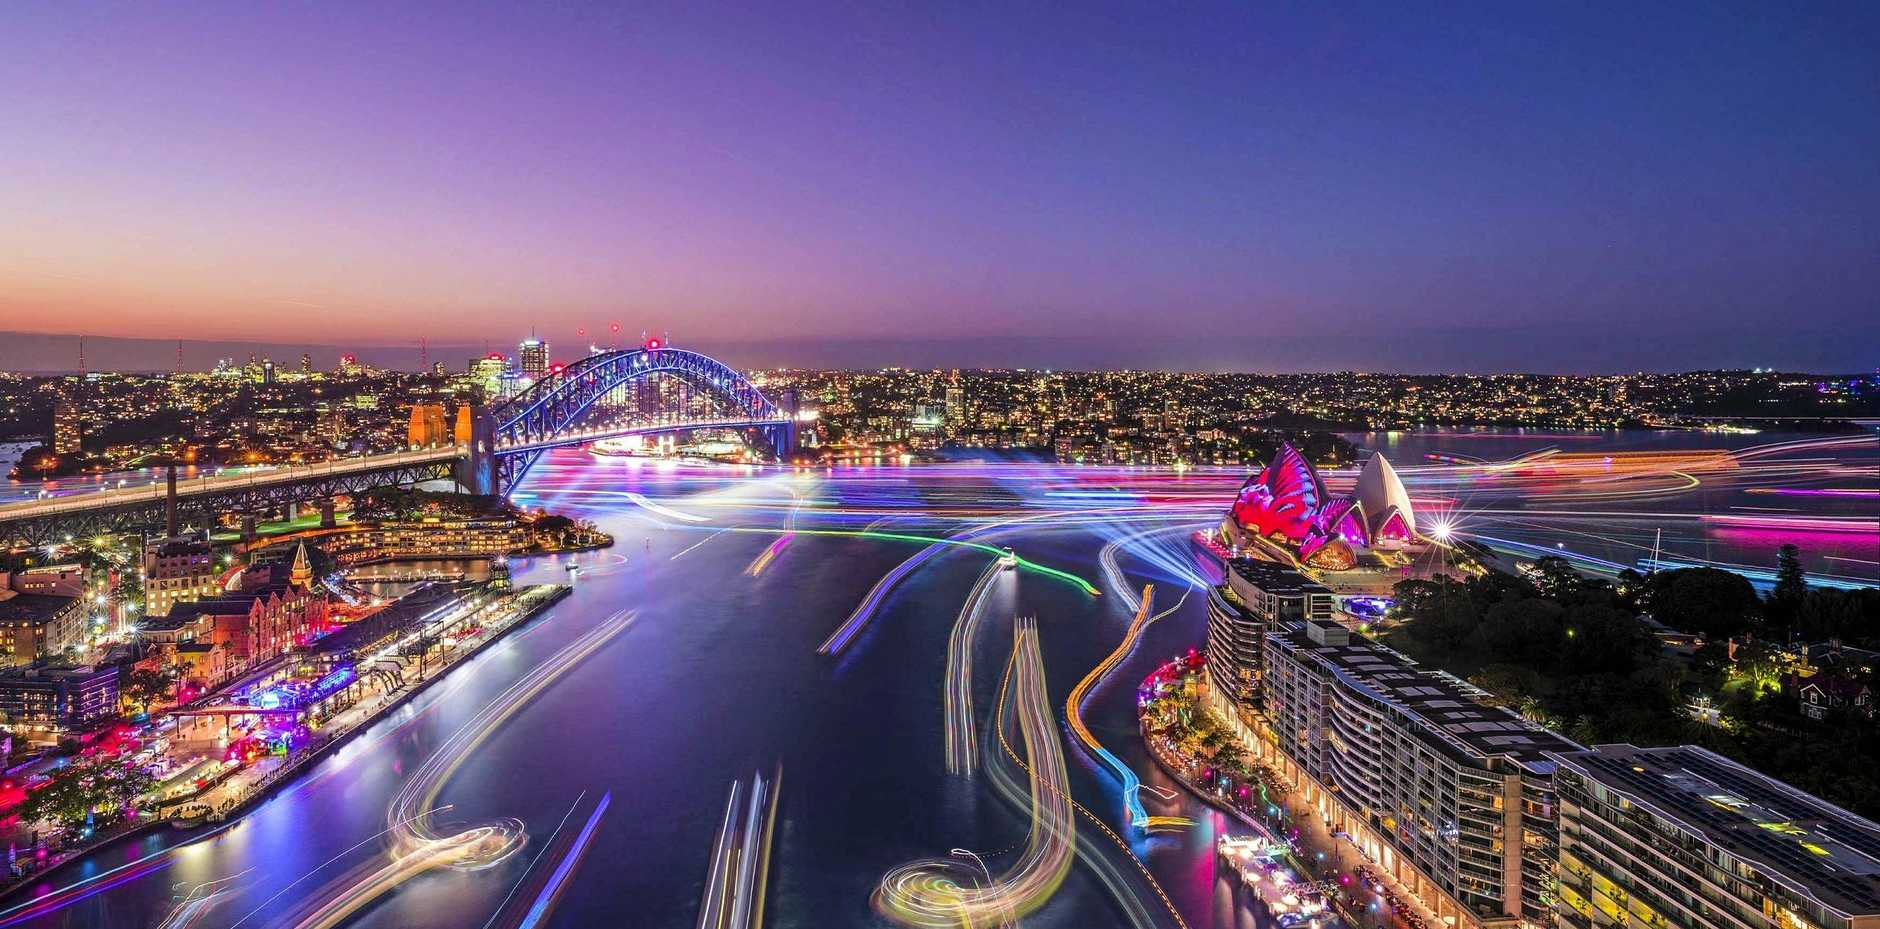 Vivid Sydney 2019 will have 23 days of spectacular light displays.